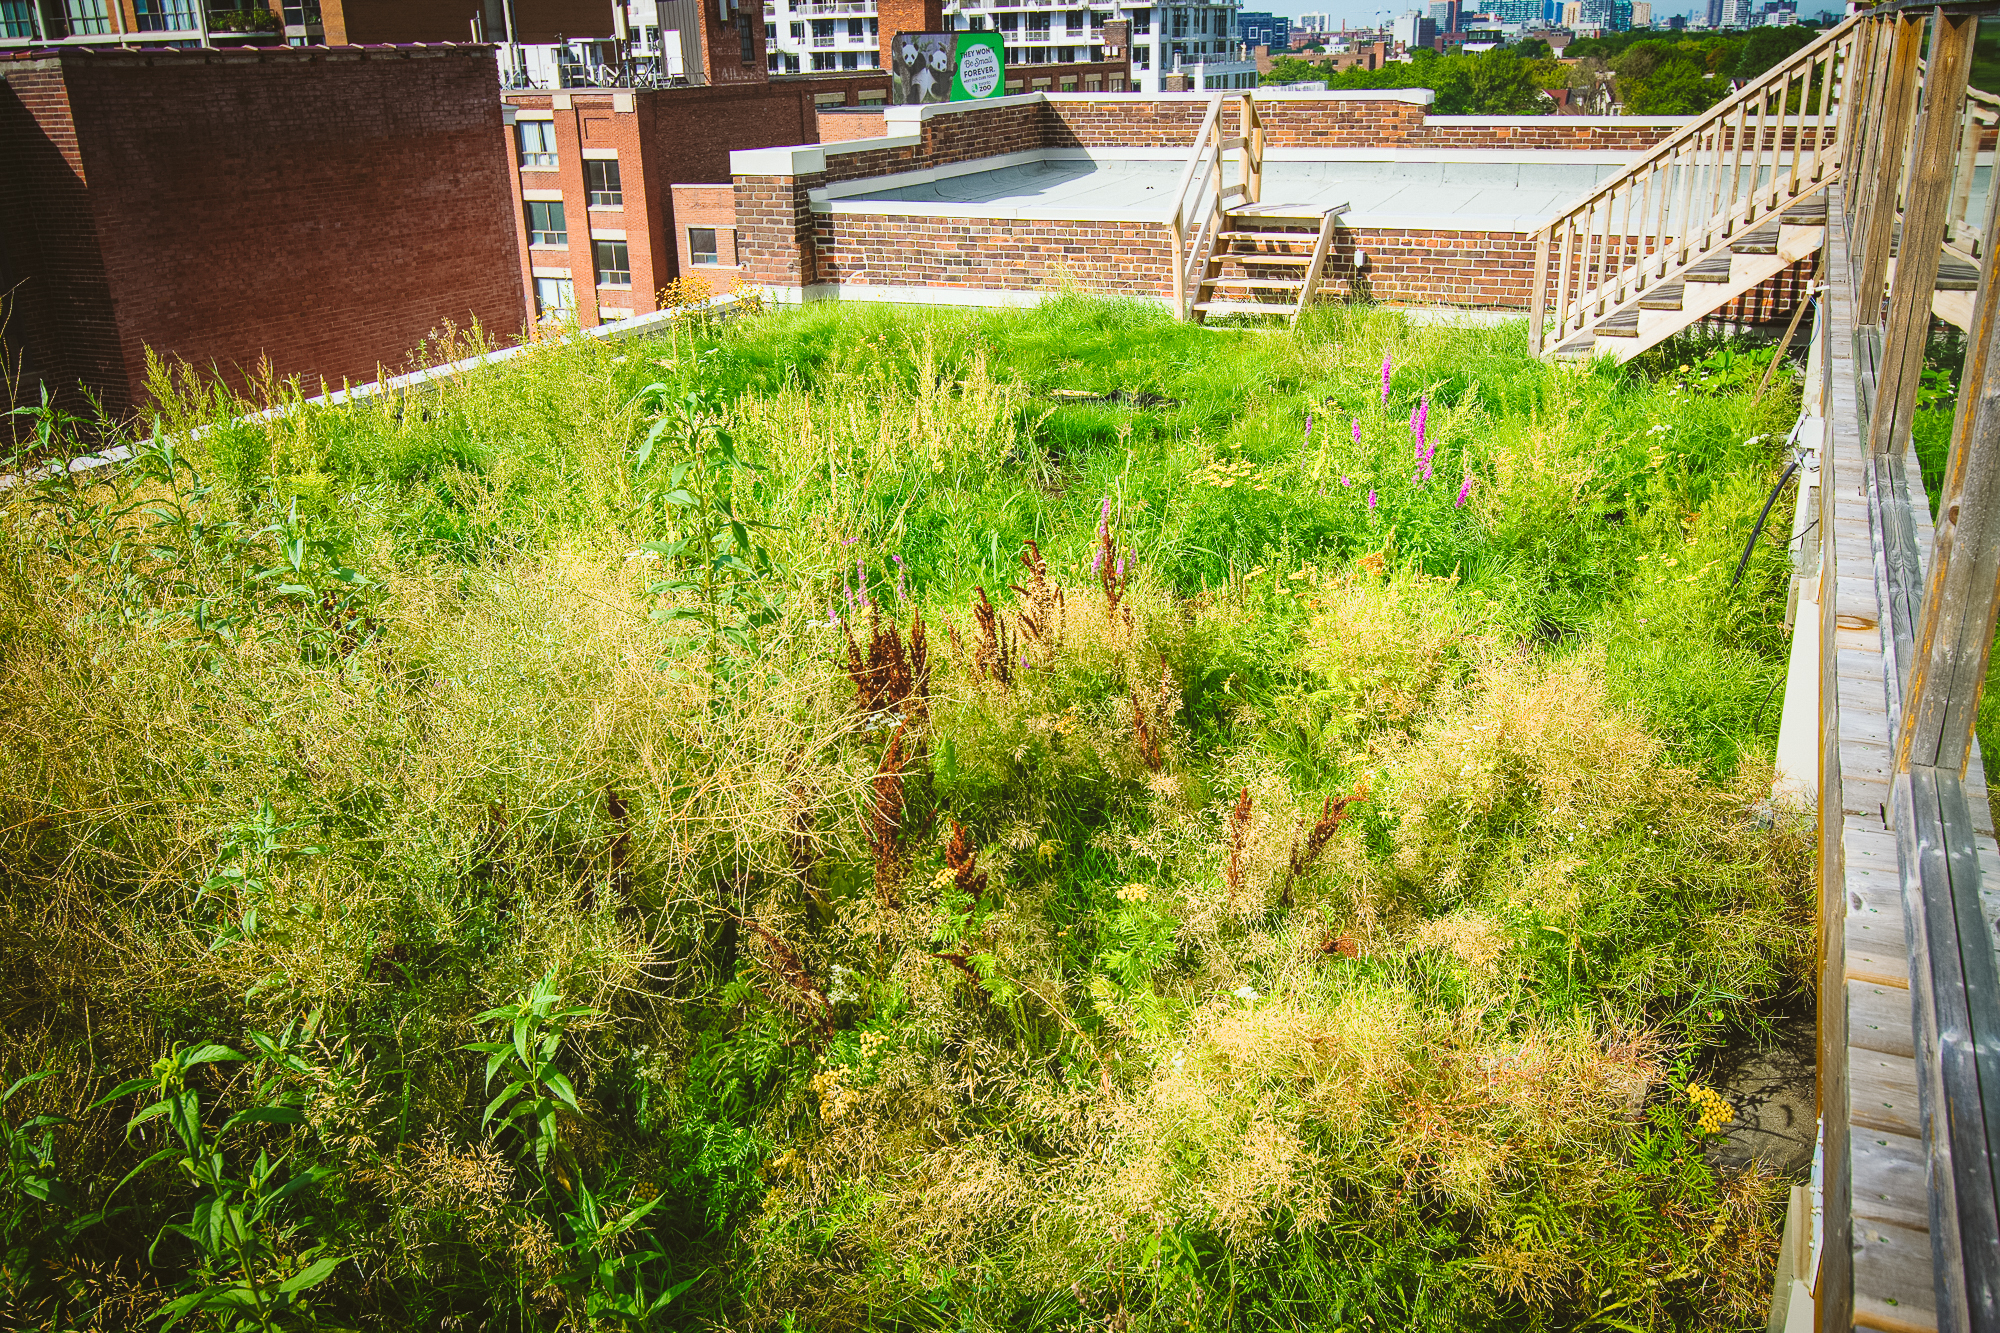 The  Robertson Building  boasts both a green roof and a living wall. The roof is a selection of wild and native grasses and flowers. In midsummer it's at its blooming best and due to the make-up of grasses, it's very hardy to the hot, dry summers as well.